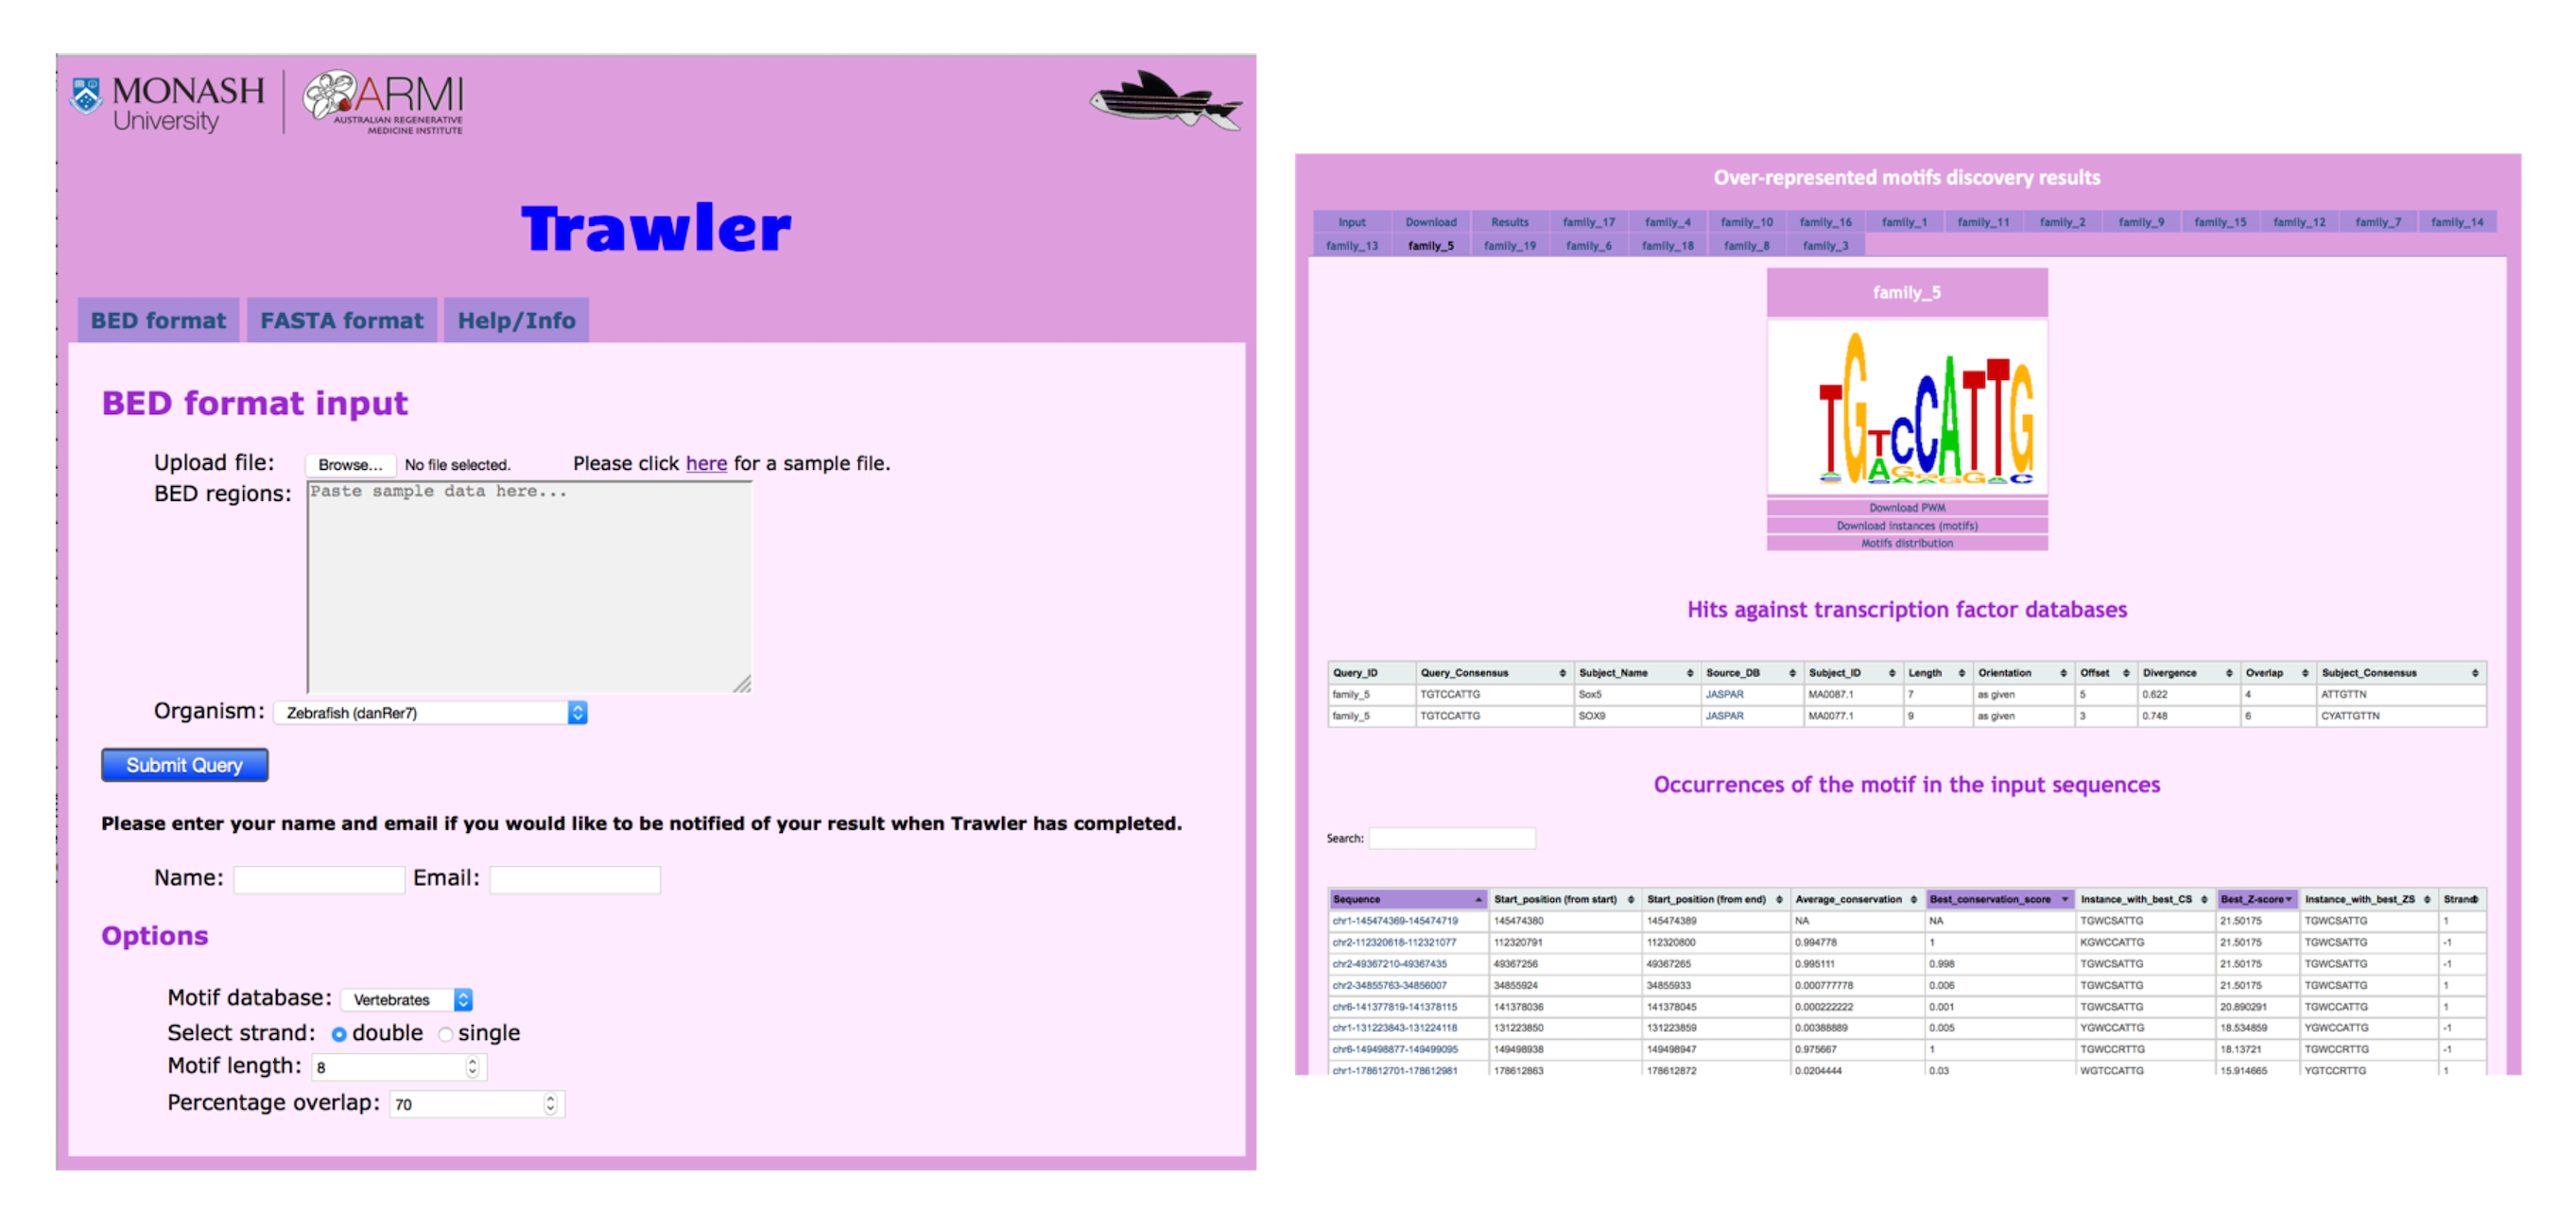 Web interface for the Trawler web service.